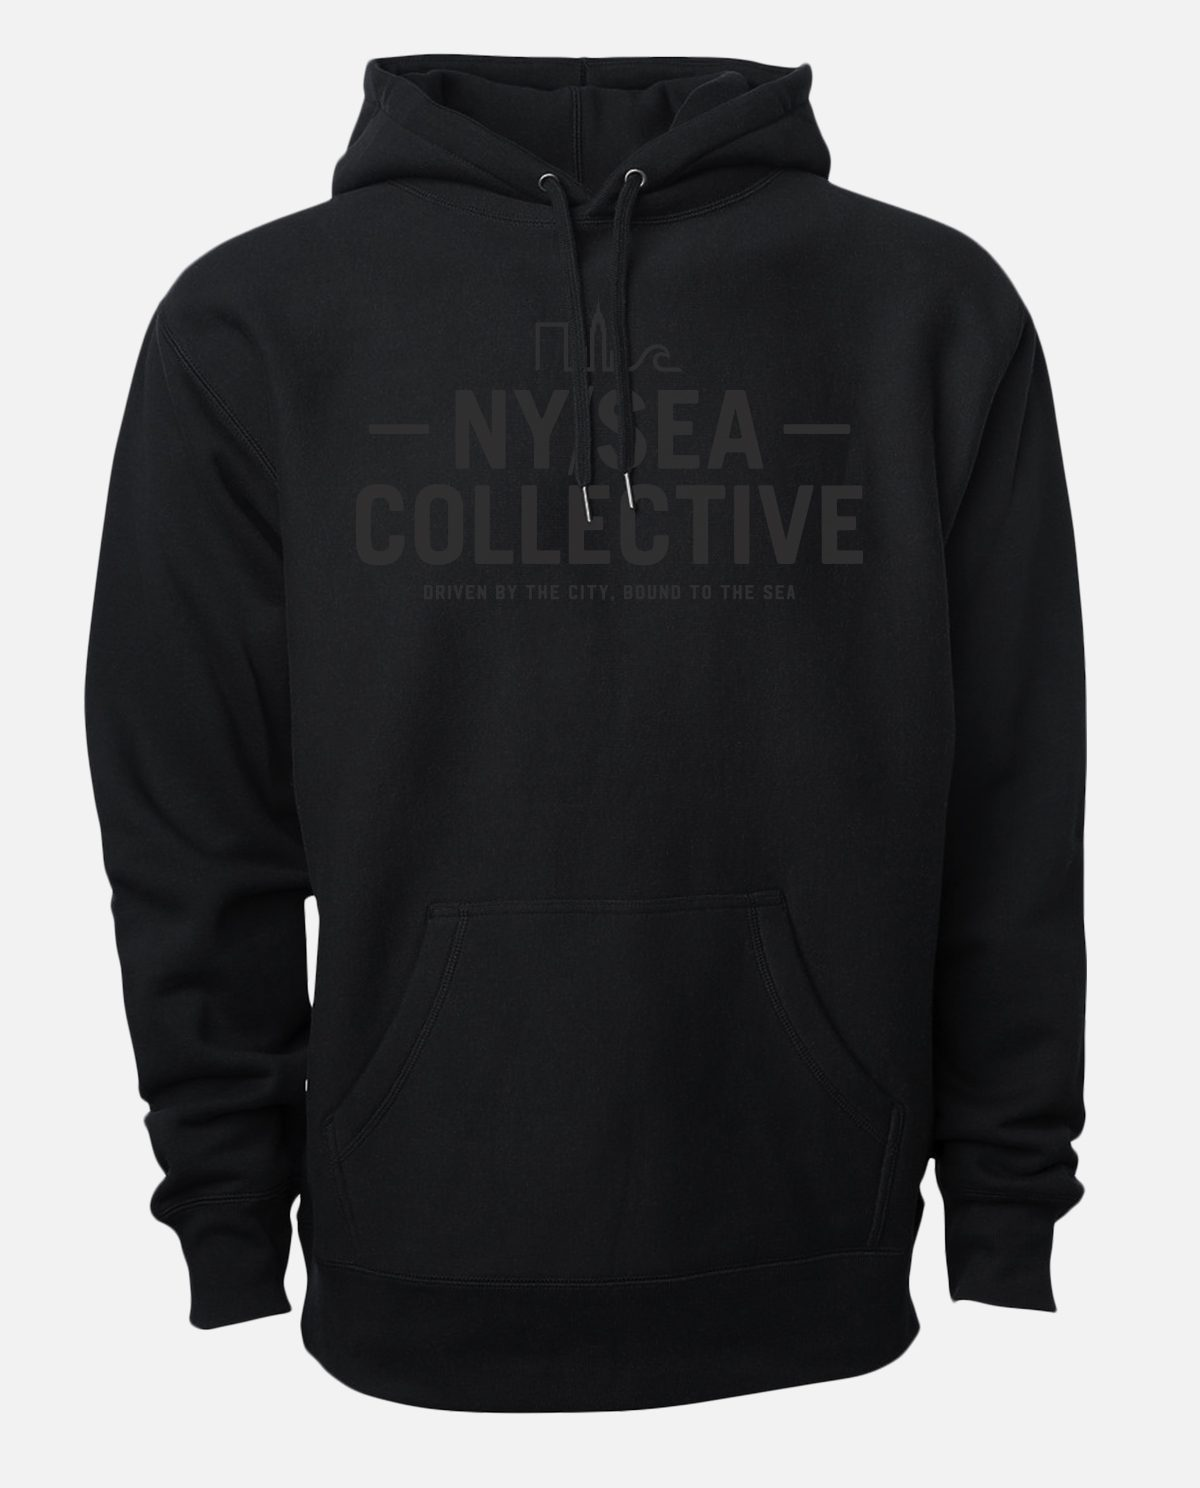 NYSEA-20WinterCollection_Collective-Black3